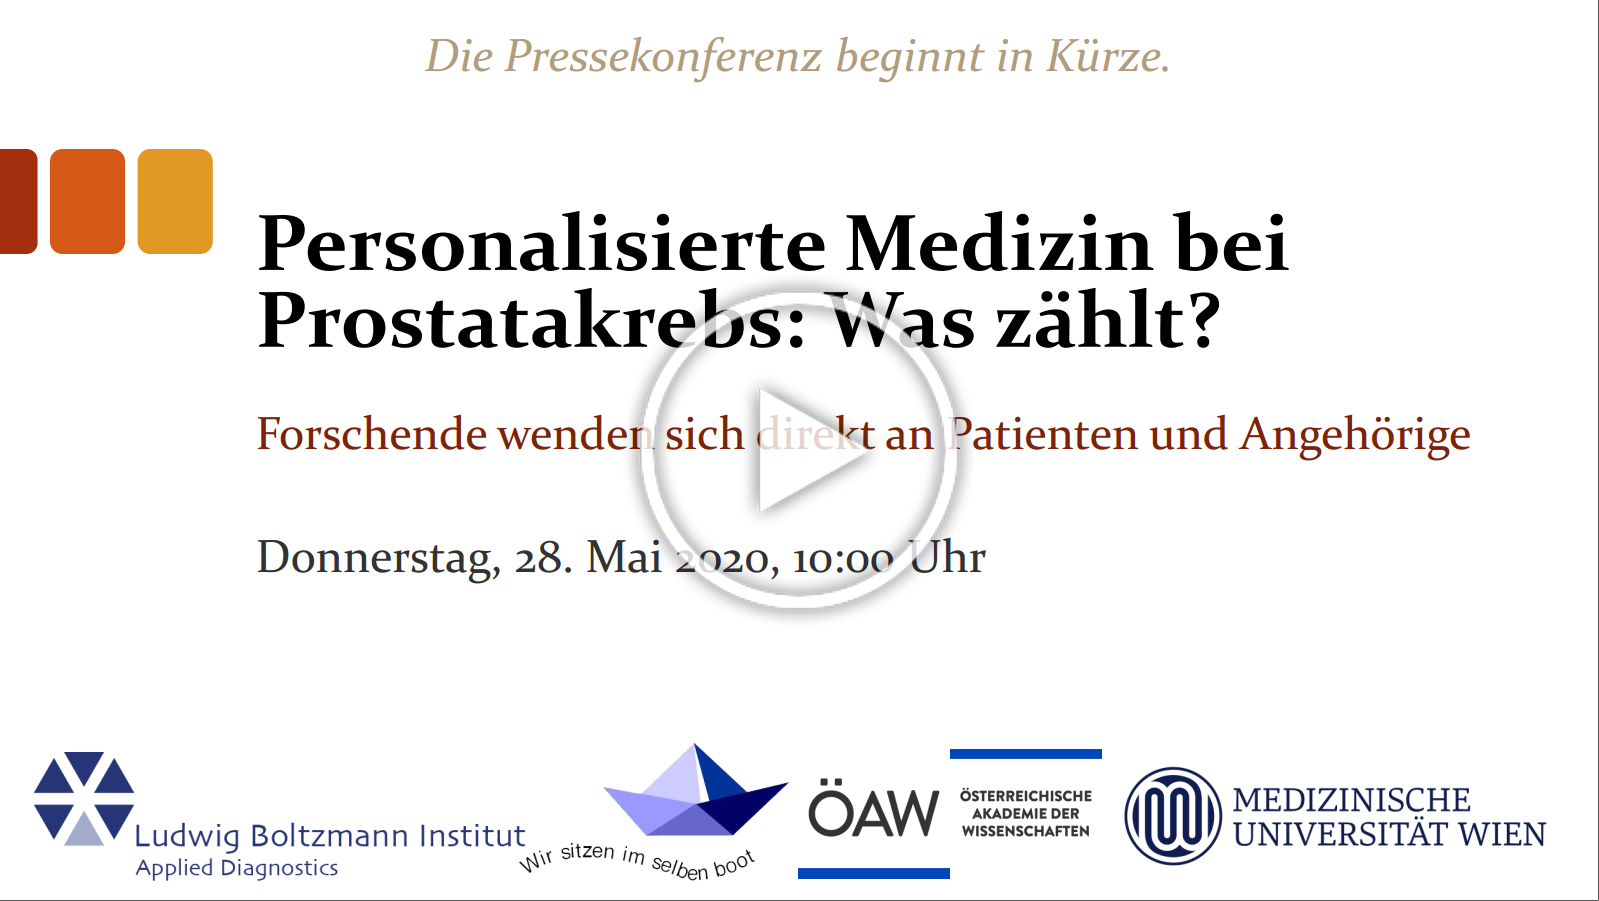 Video Virtuelle Pressekonferenz am 28.05.2020